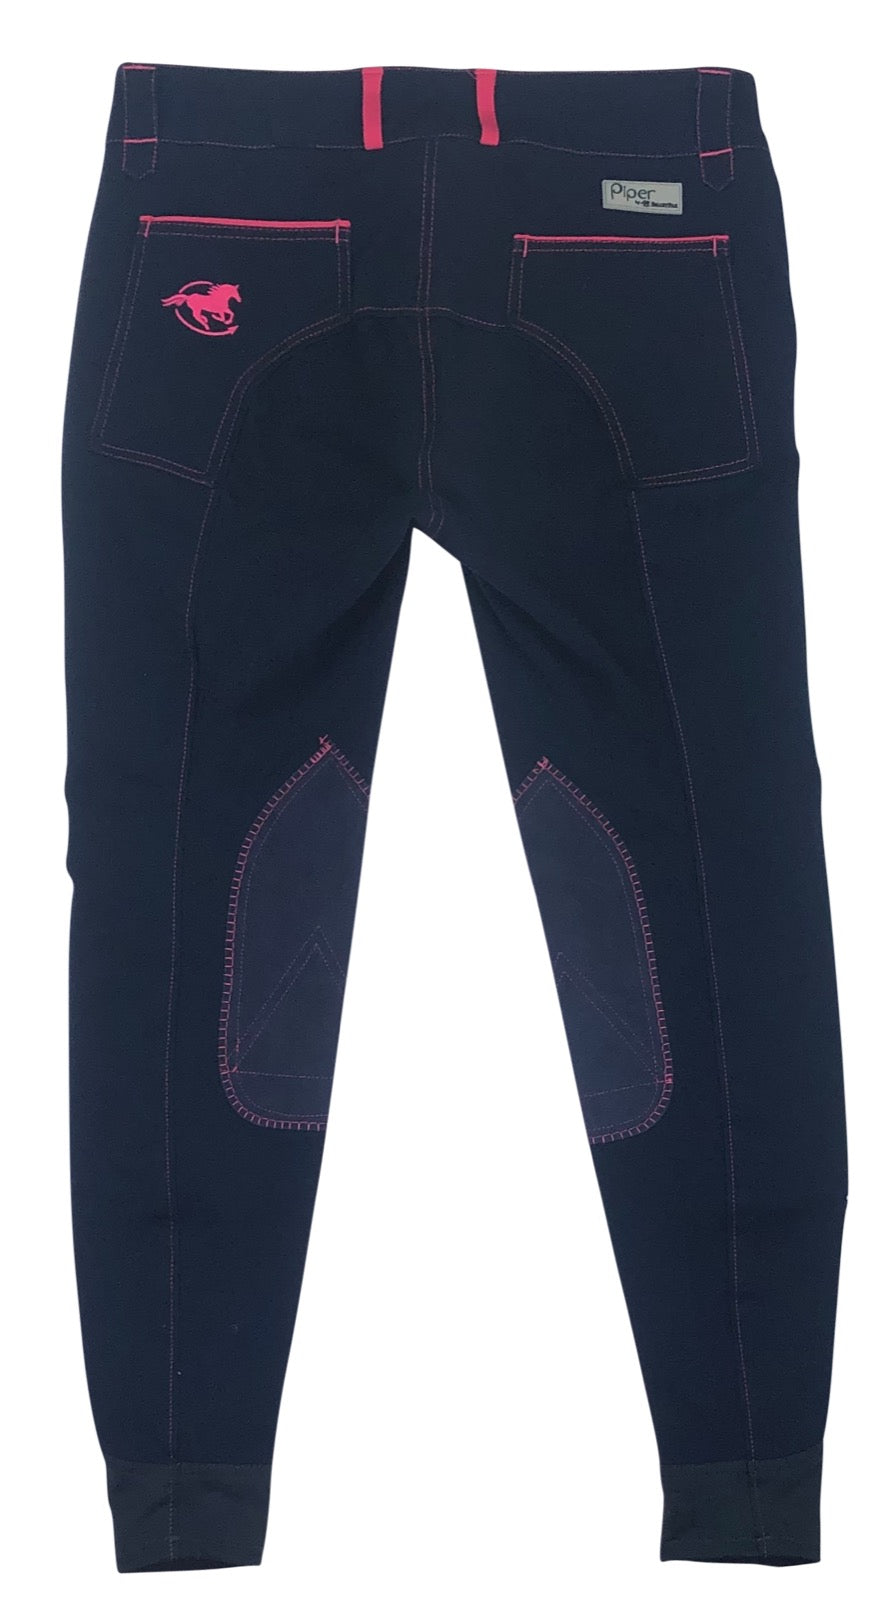 back view of SmartPak Piper Knee Patch Breeches in Navy/Hot Pink